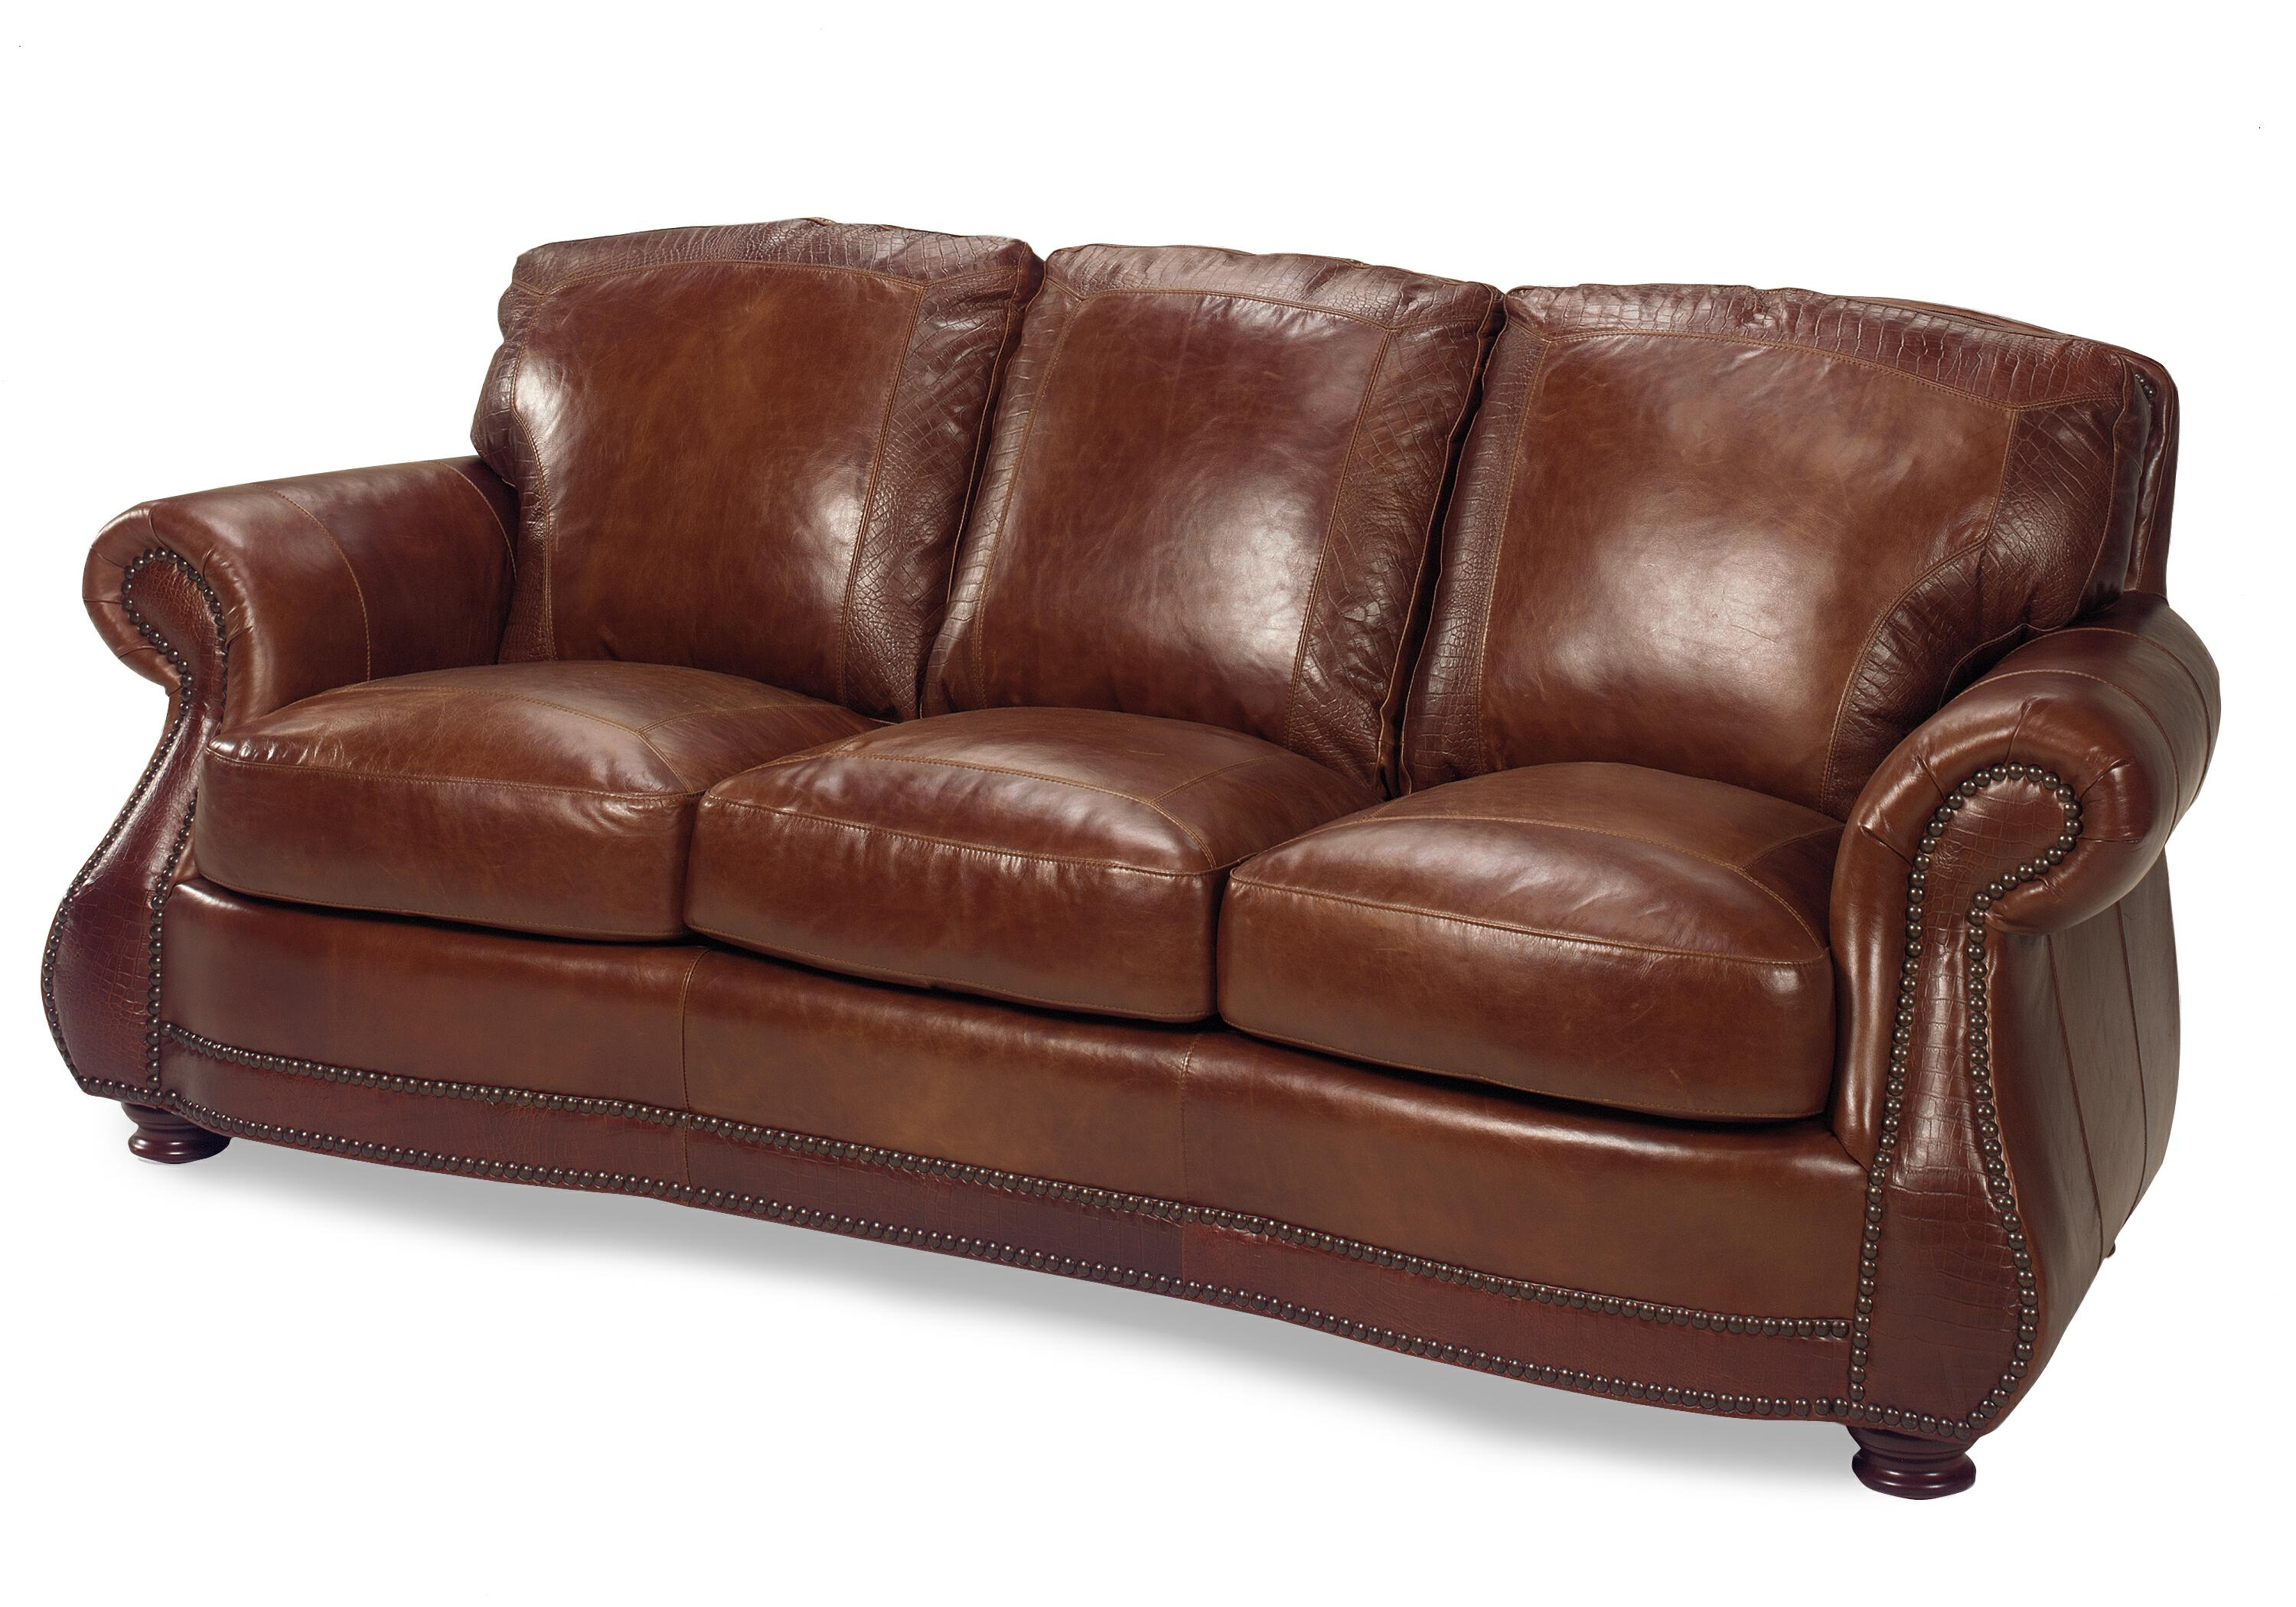 9055 Sofa by USA Premium Leather at Dream Home Interiors